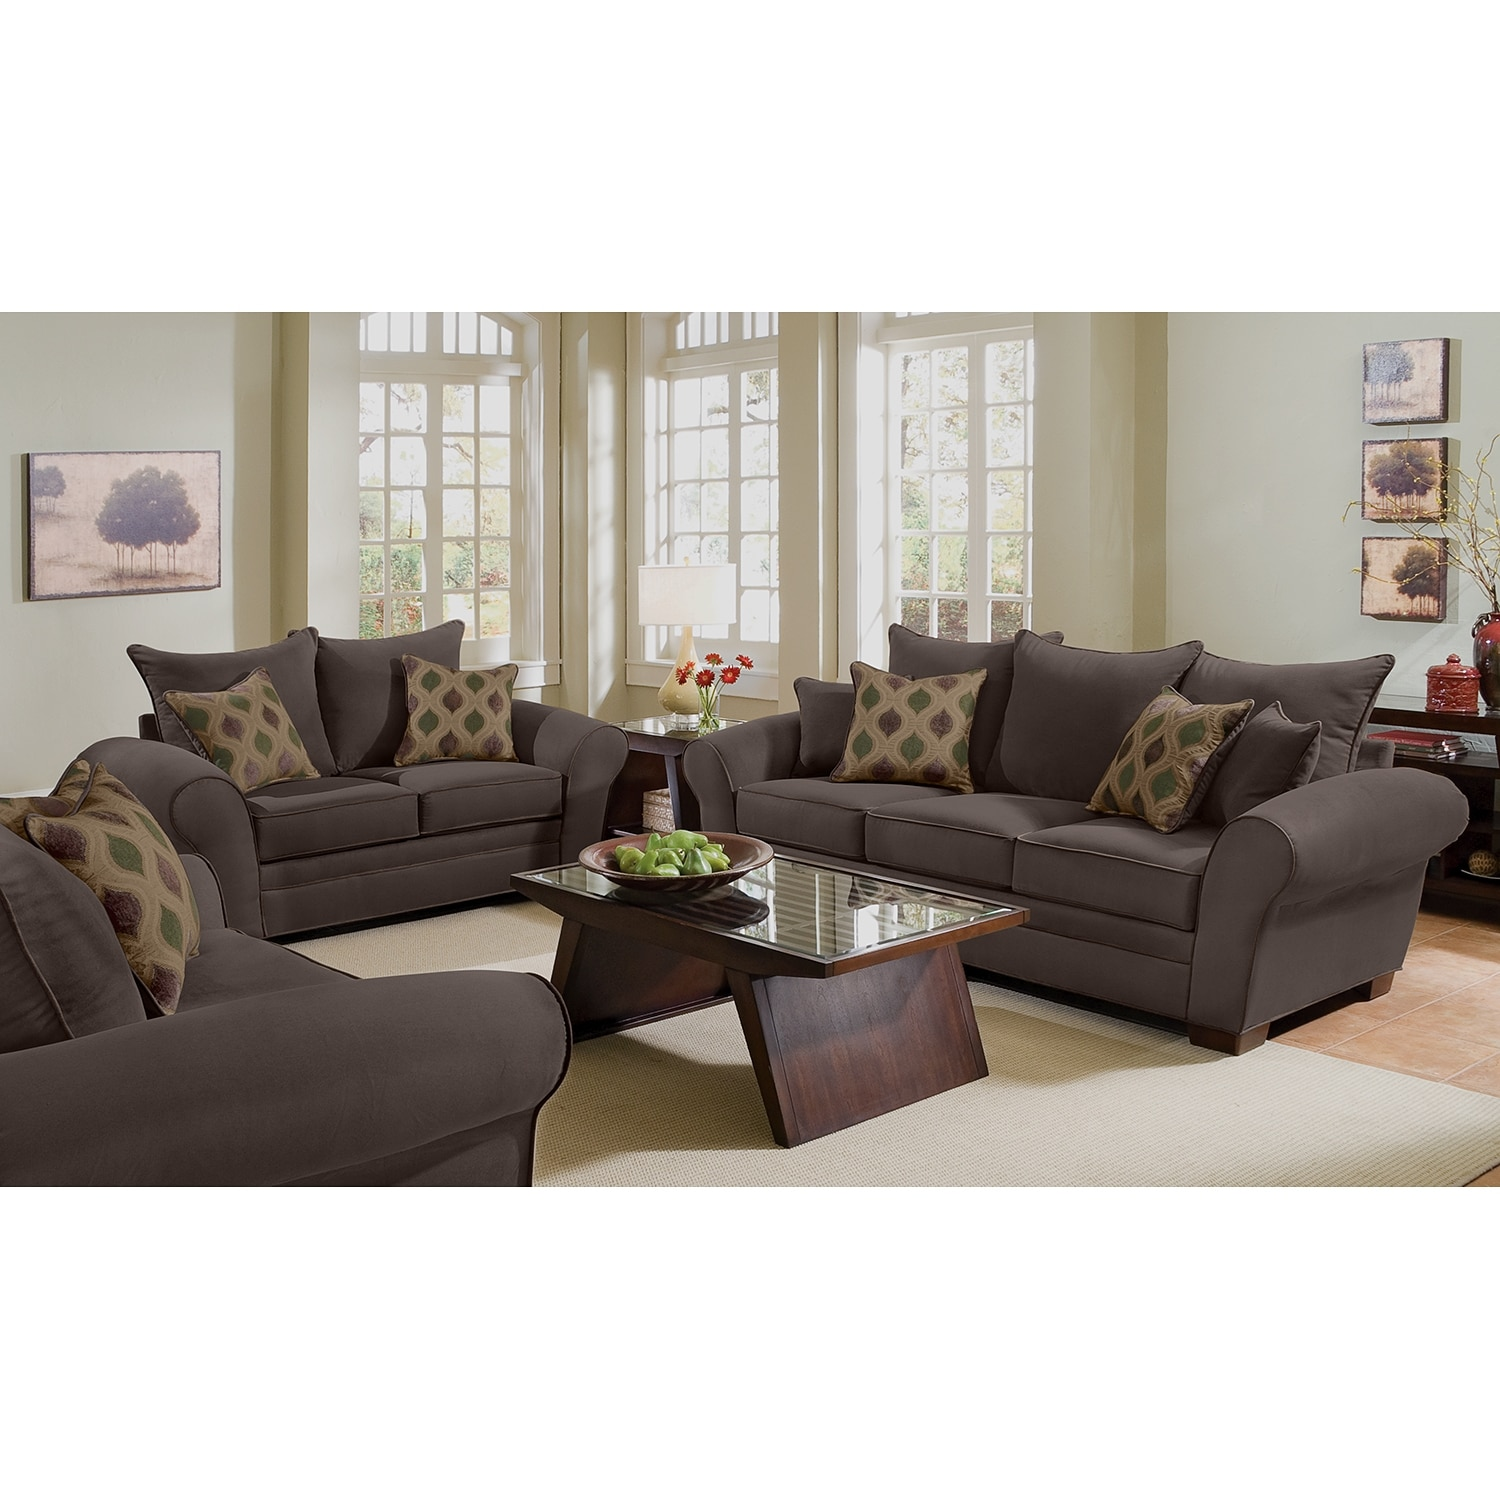 Rendezvous sofa and loveseat set chocolate american for Living furniture packages